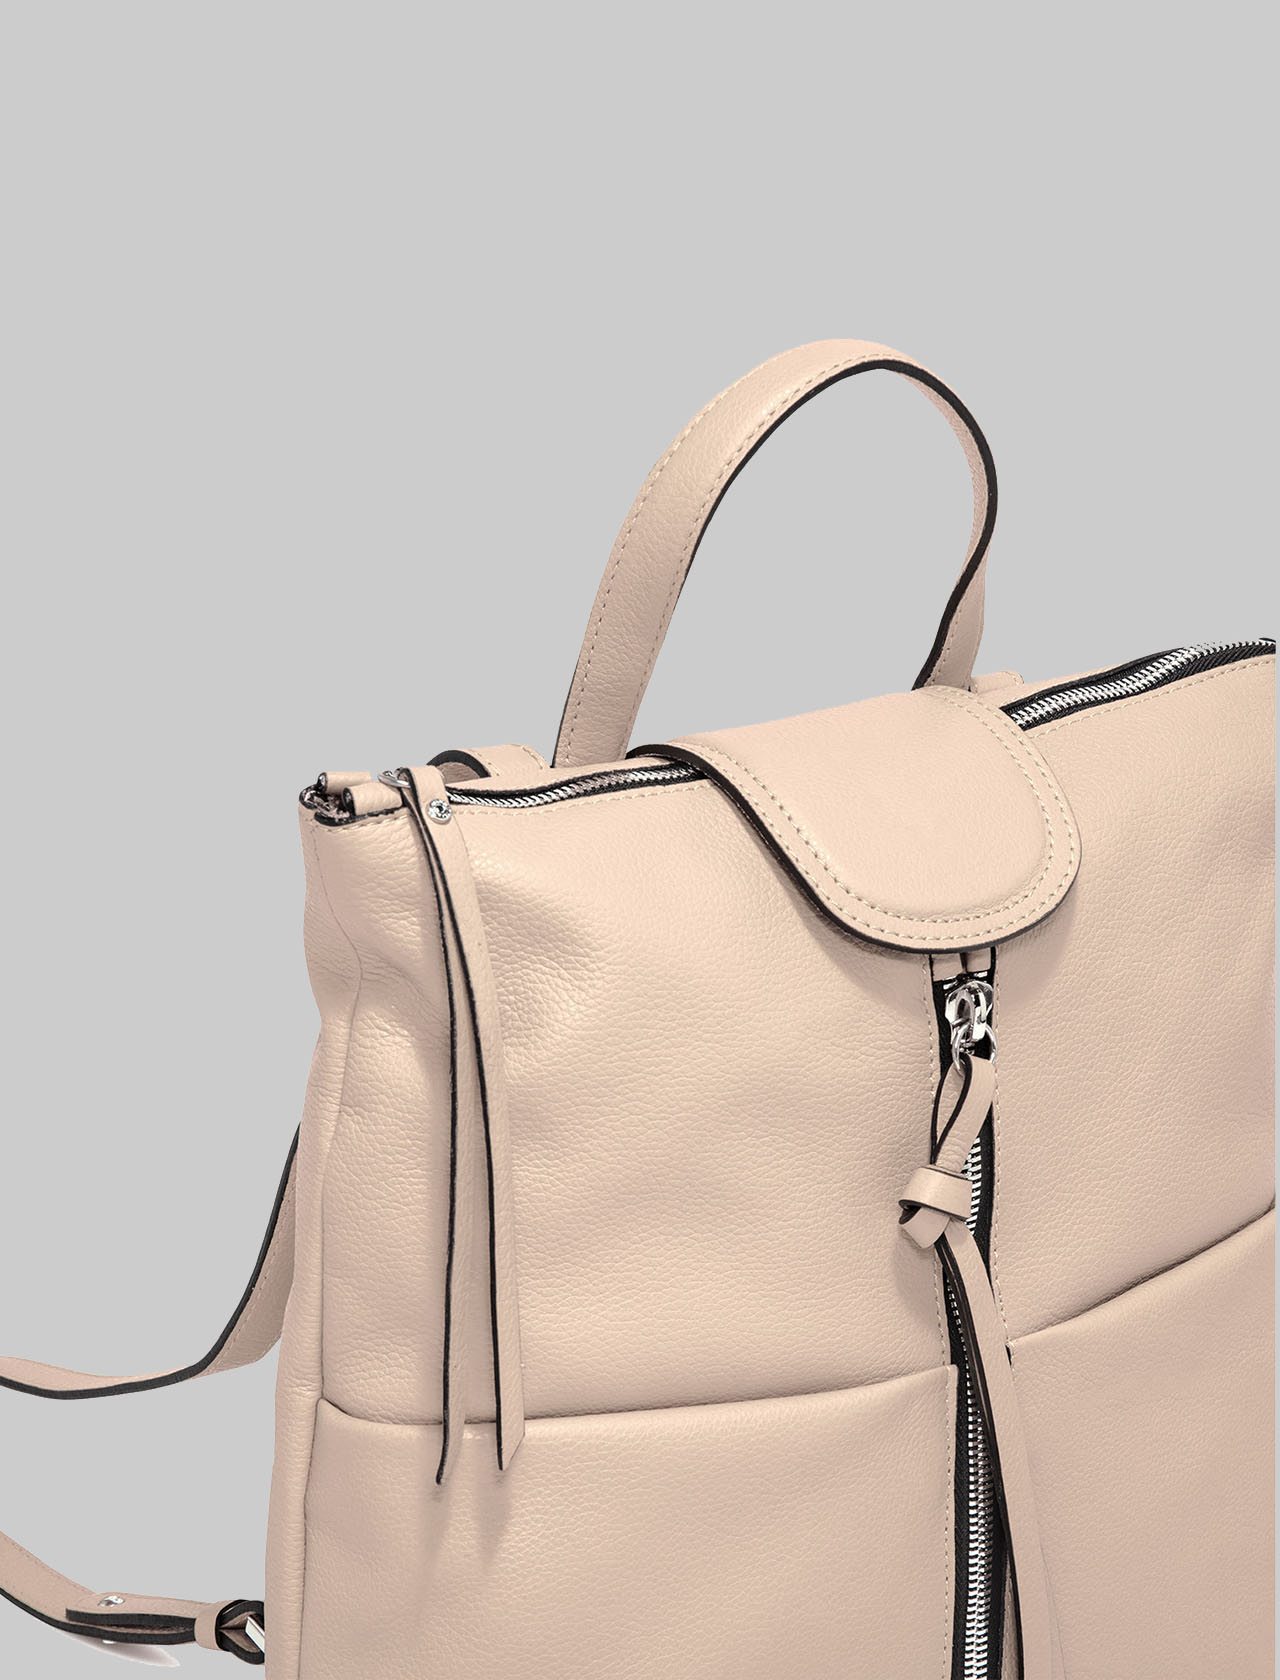 Giada Woman Backpack with Central Zipper In Beige Leather With Leather Handle And Adjustable Straps Gianni Chiarini | Bags and backpacks | ZN704011706